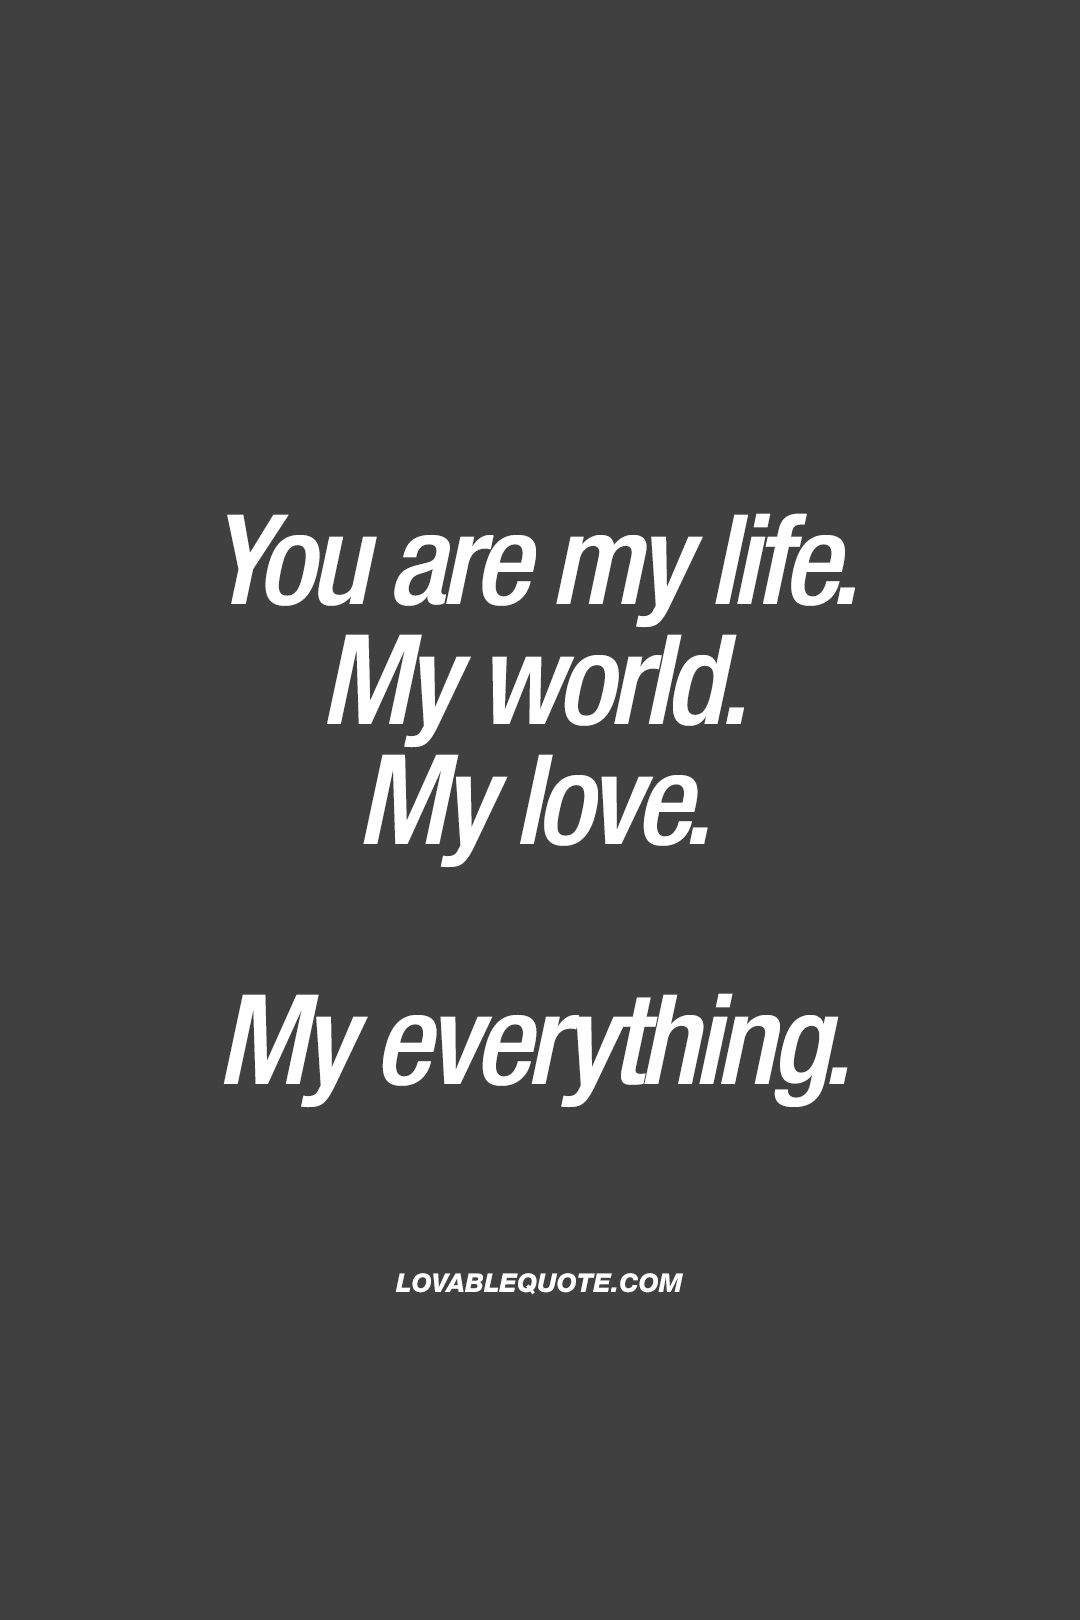 Quote For Him Or Her You Are My Life My World My Love My Everything My Everything Quotes My Life Quotes You Are My Everything Quotes